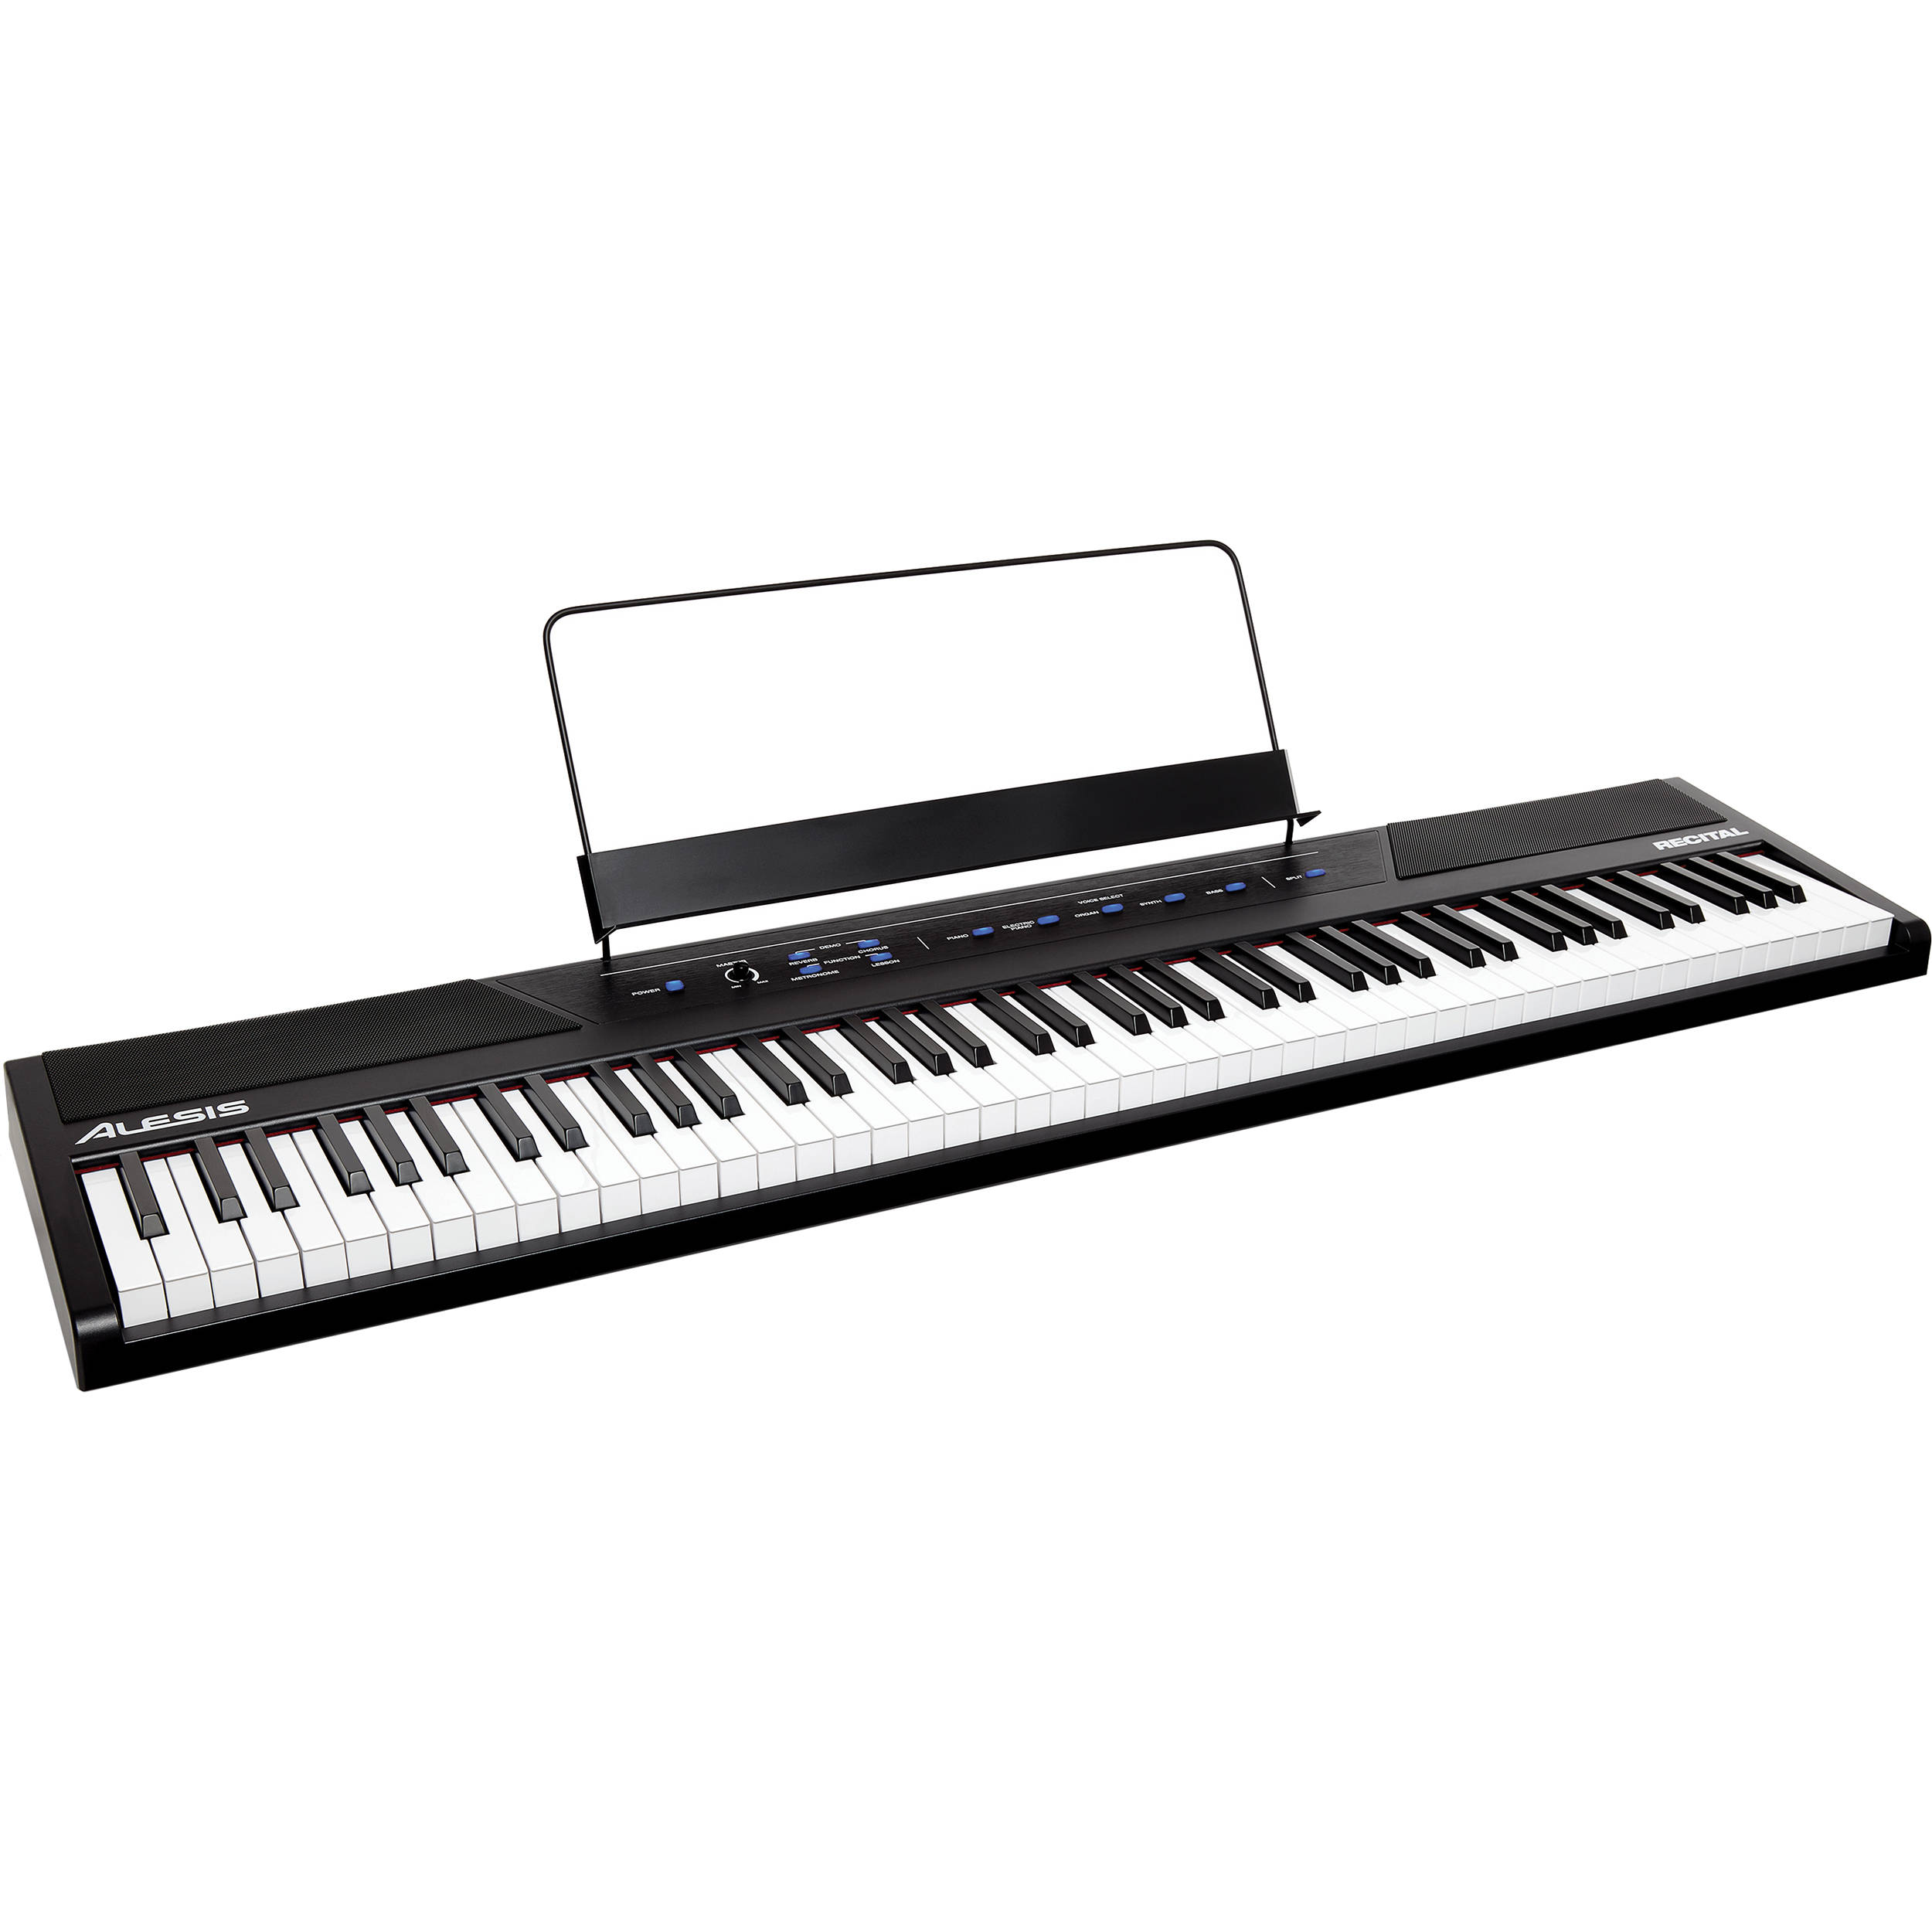 alesis recital 88 key digital piano with full sized keys recital. Black Bedroom Furniture Sets. Home Design Ideas